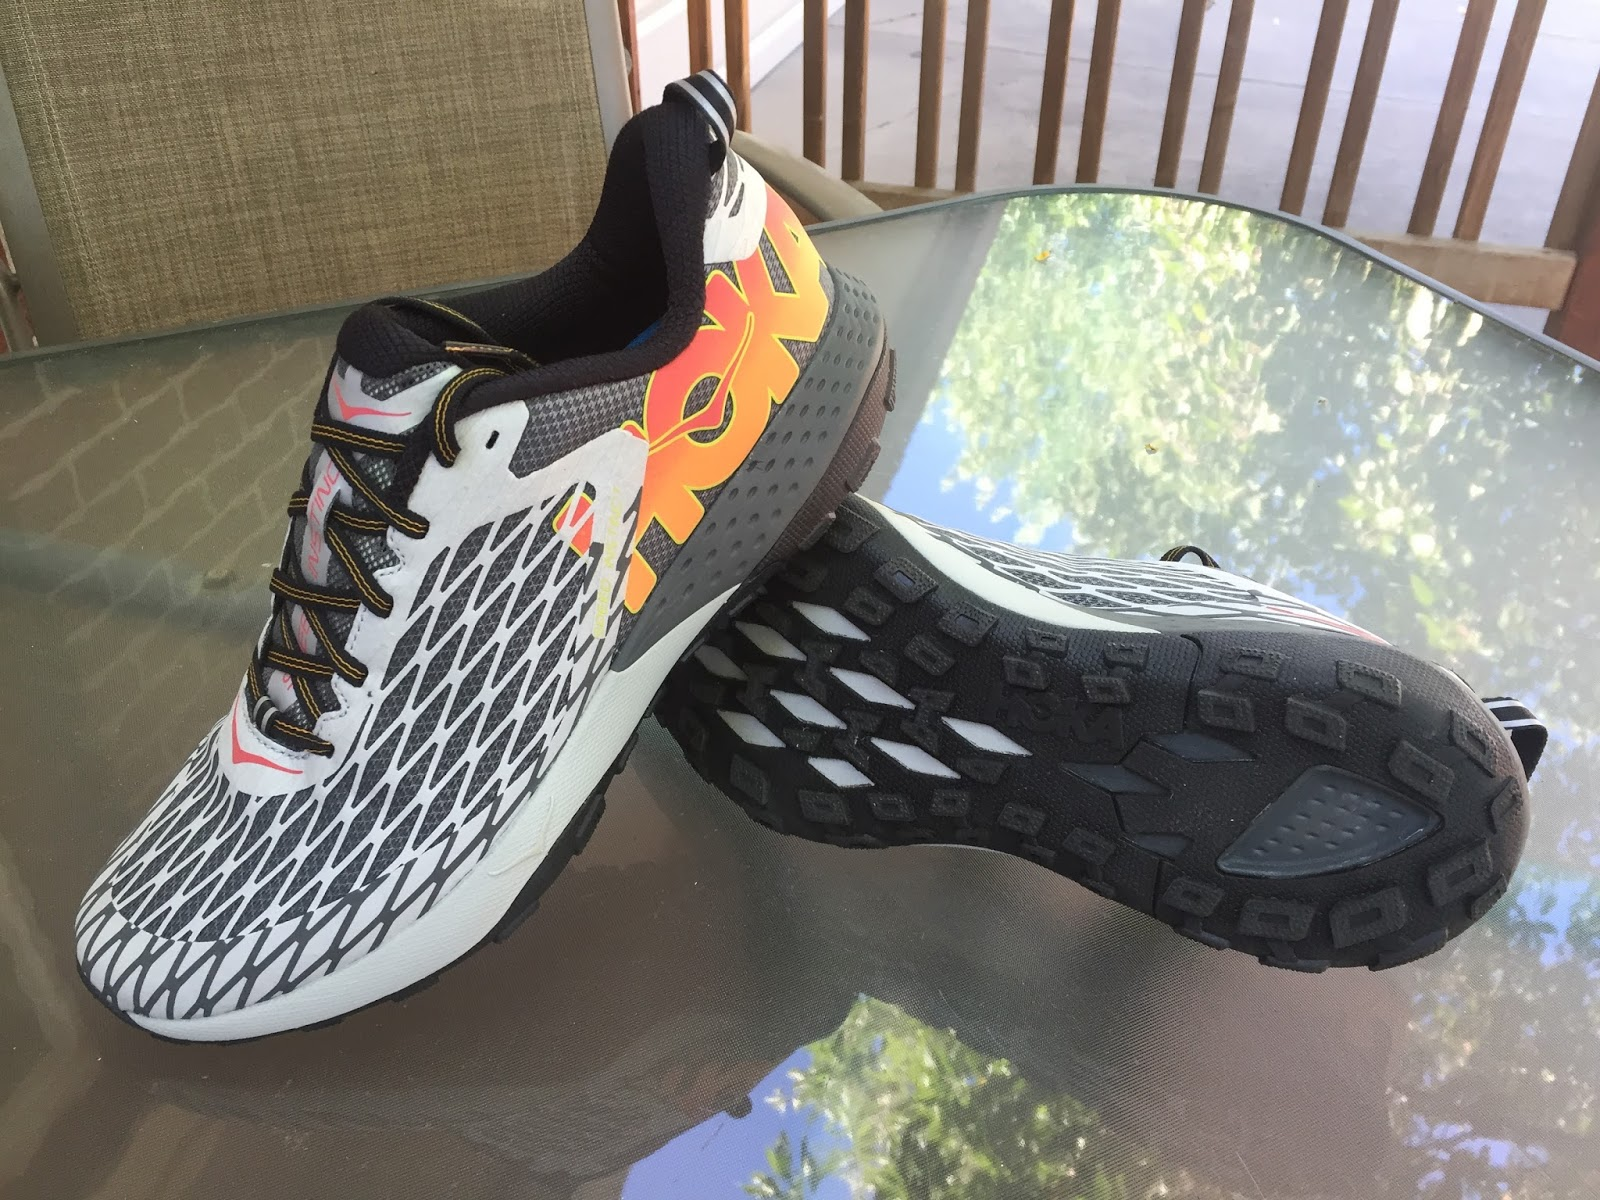 sports shoes afa43 fc122 ... than I had hoped, this is still a very fast and capable shoe and a jump  forward for Hoka. Definitely a top level shoe that I would highly recommend.